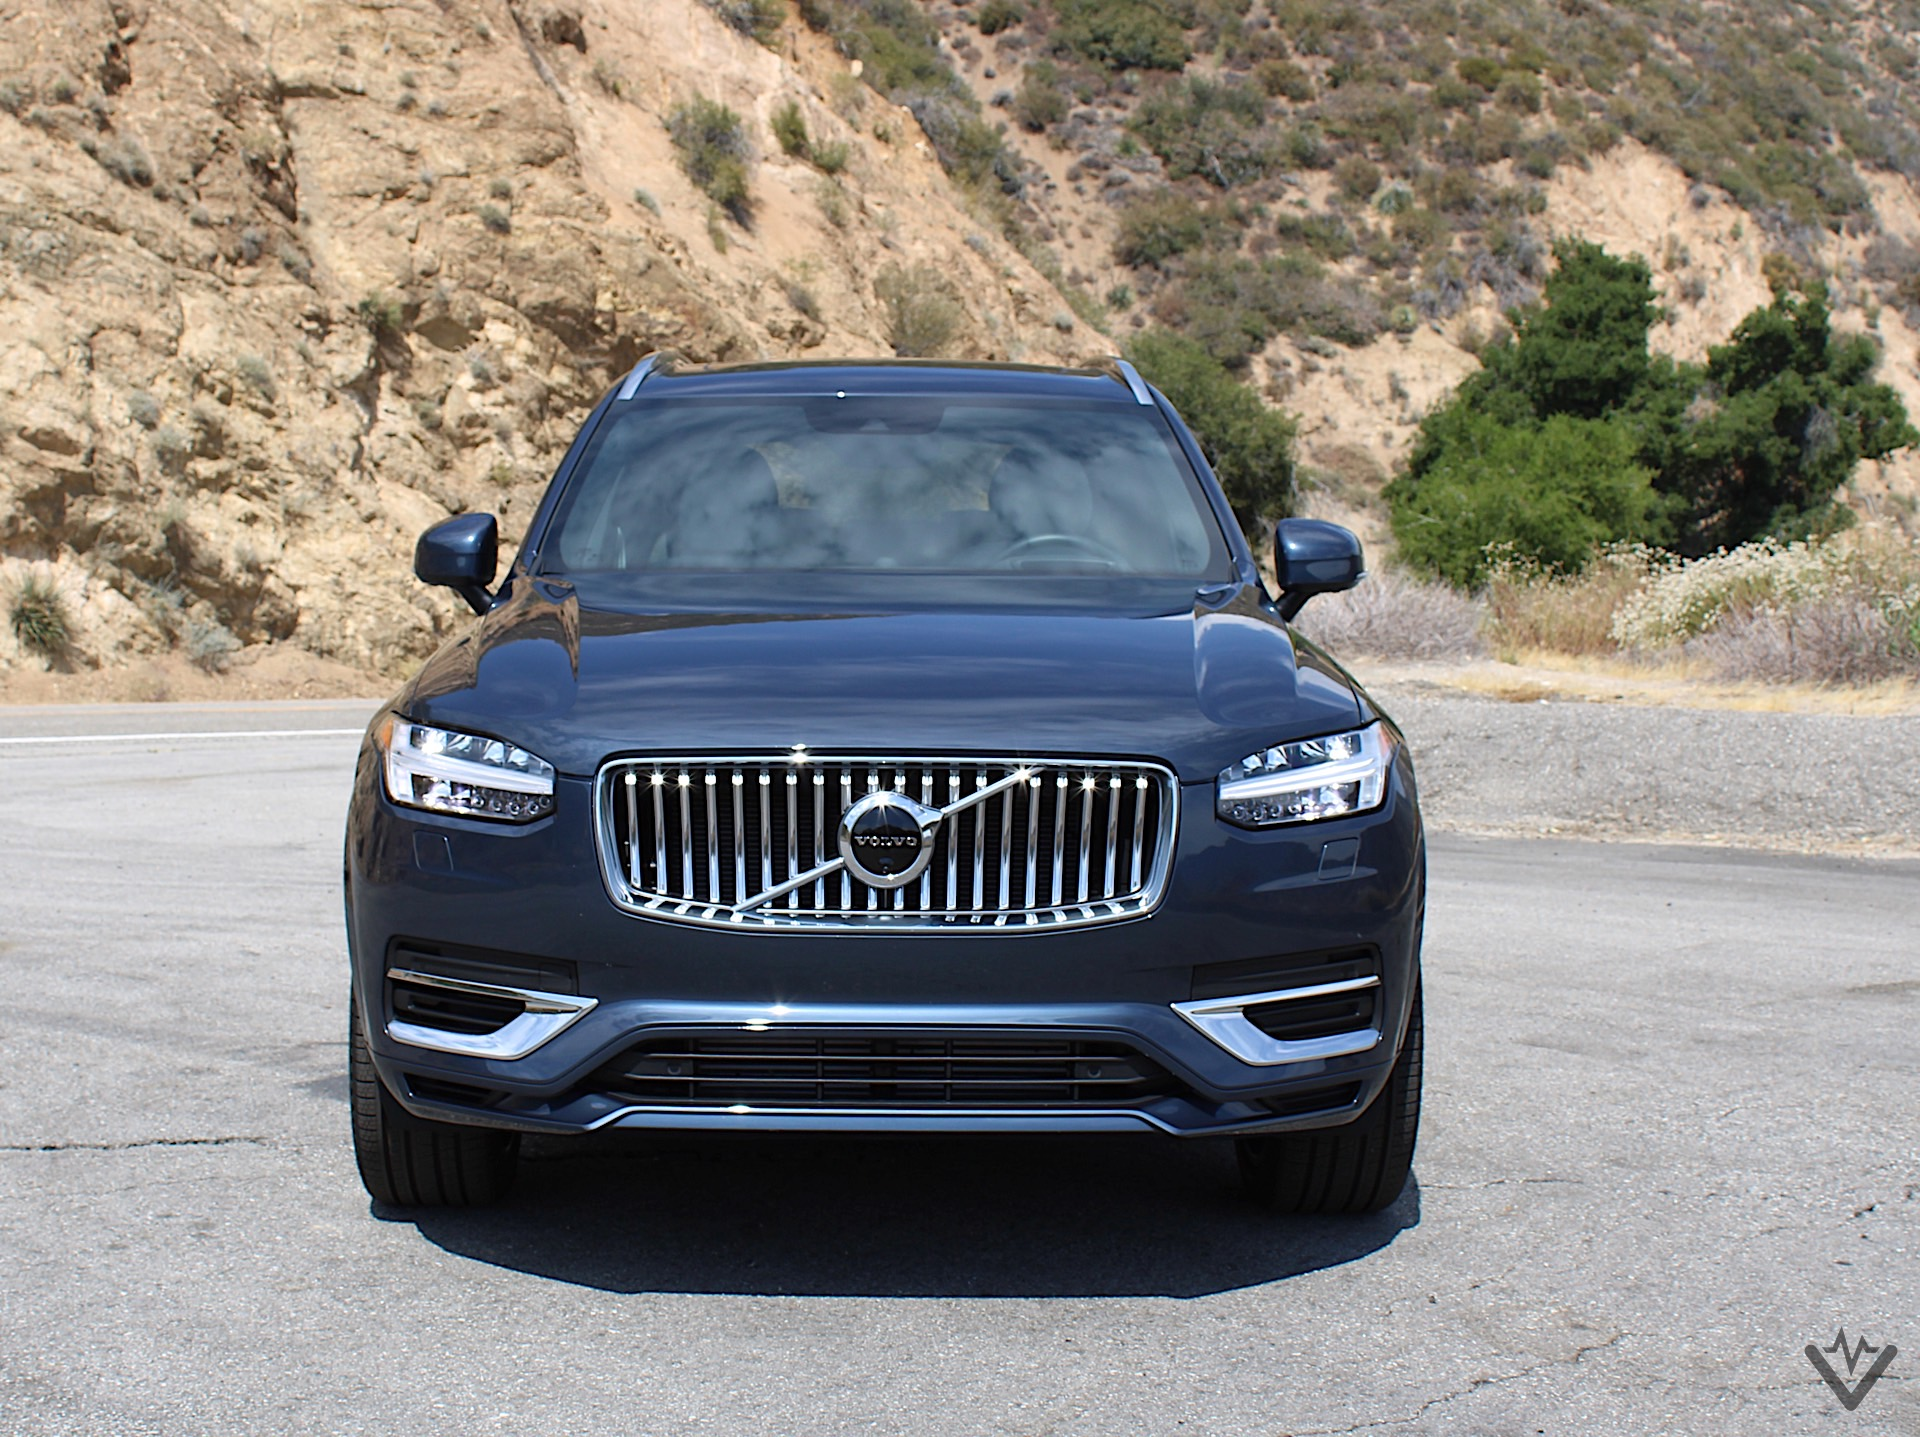 2021 Volvo XC90 T8 Recharge front 02 1